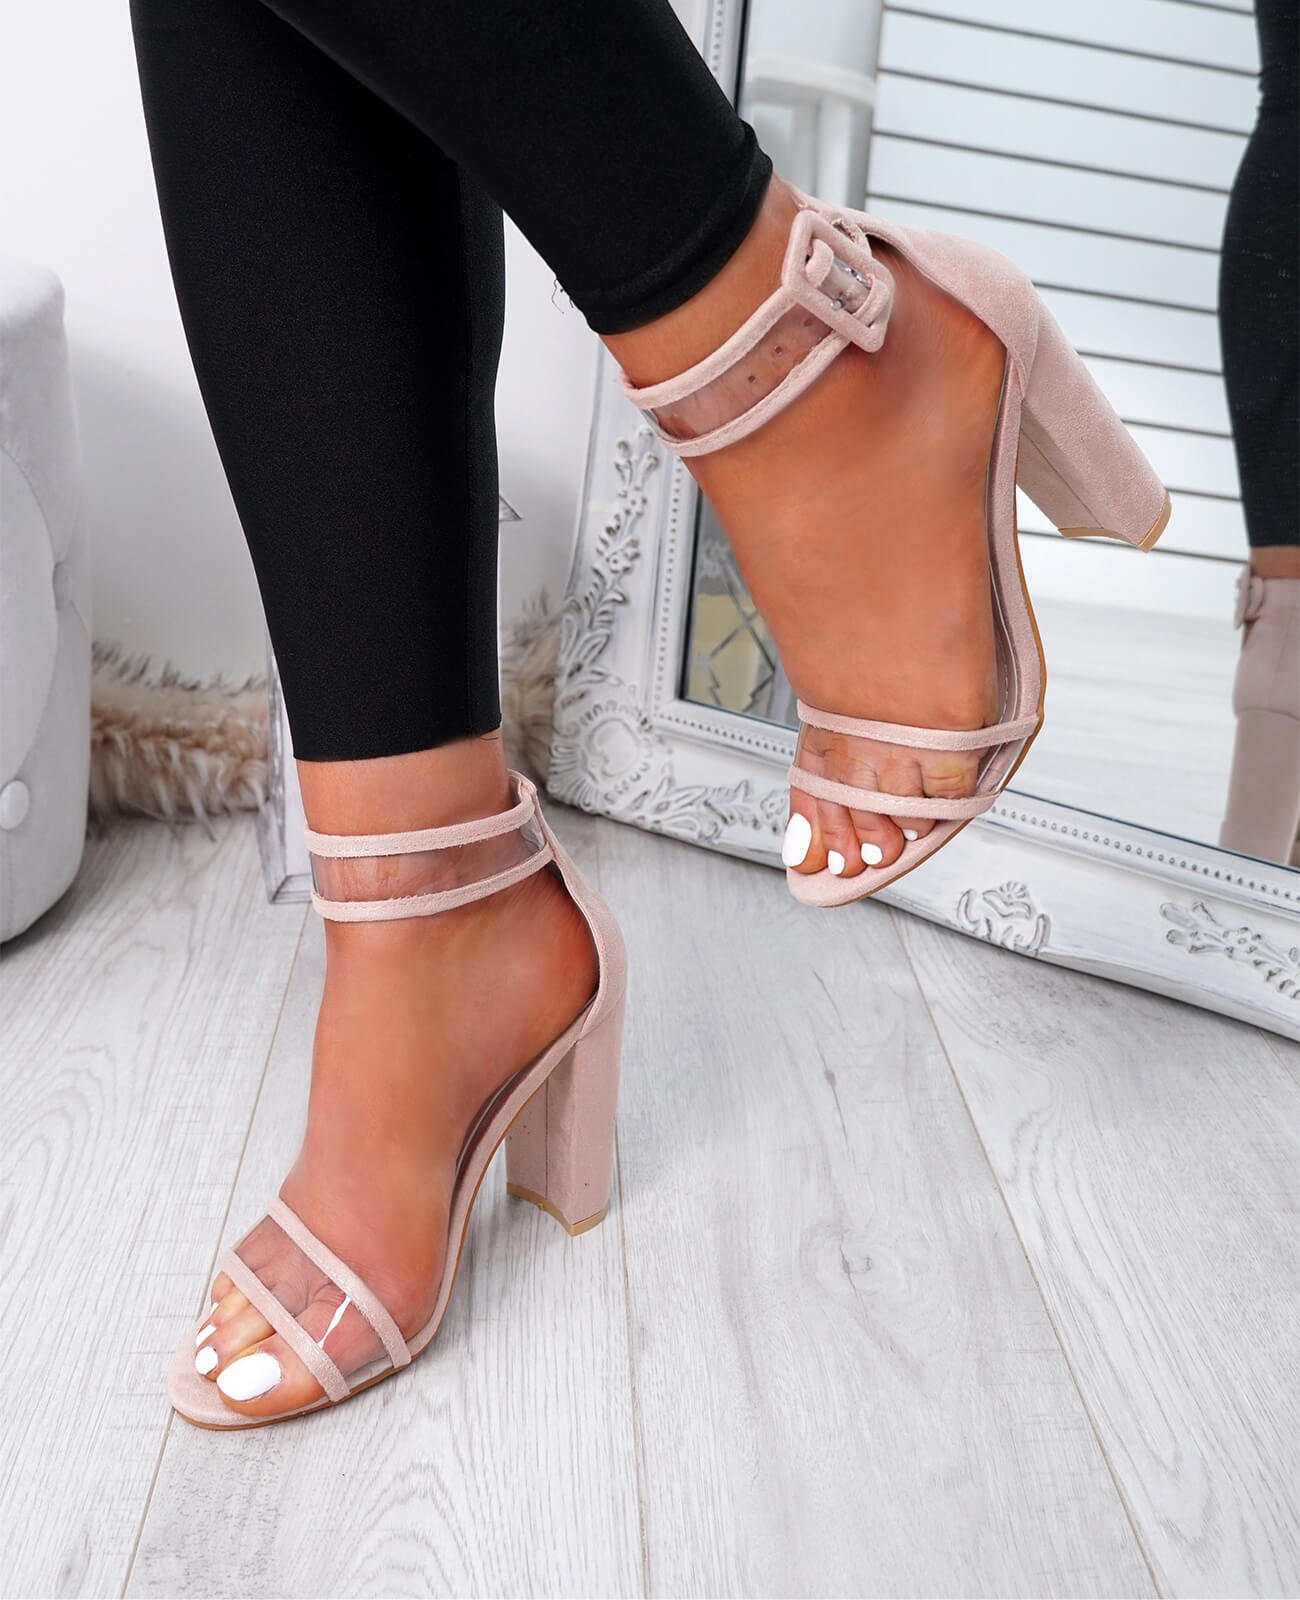 WOMENS-LADIES-ANKLE-STRAP-HIGH-HEEL-SANDALS-PEEP-TOE-CLEAR-FASHION-SHOES-SIZE thumbnail 8